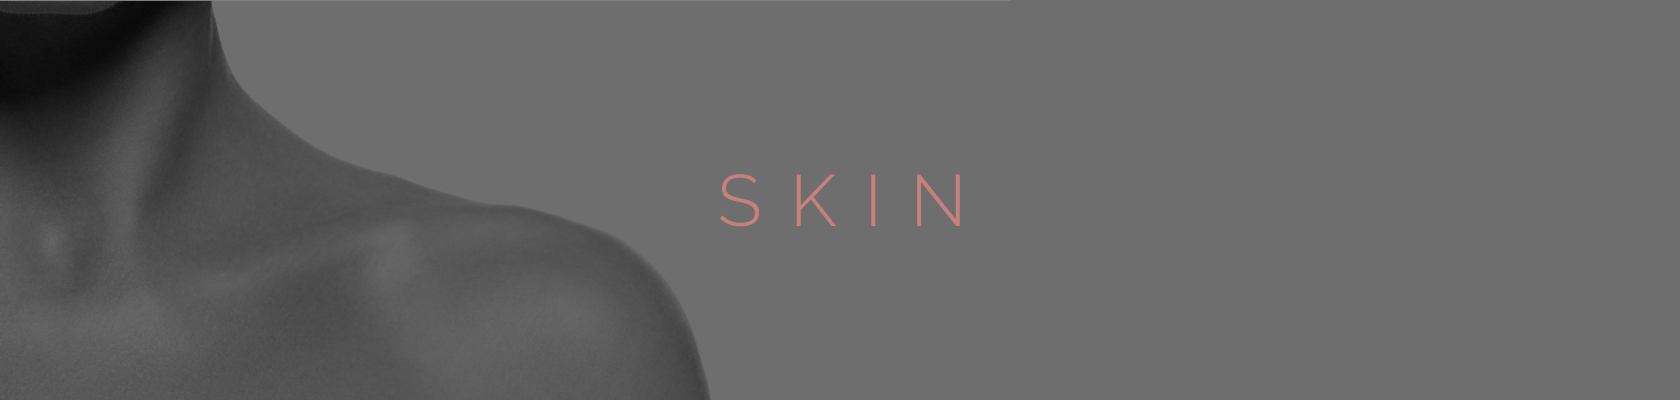 ABOUT FACE SKIN banner-08-08